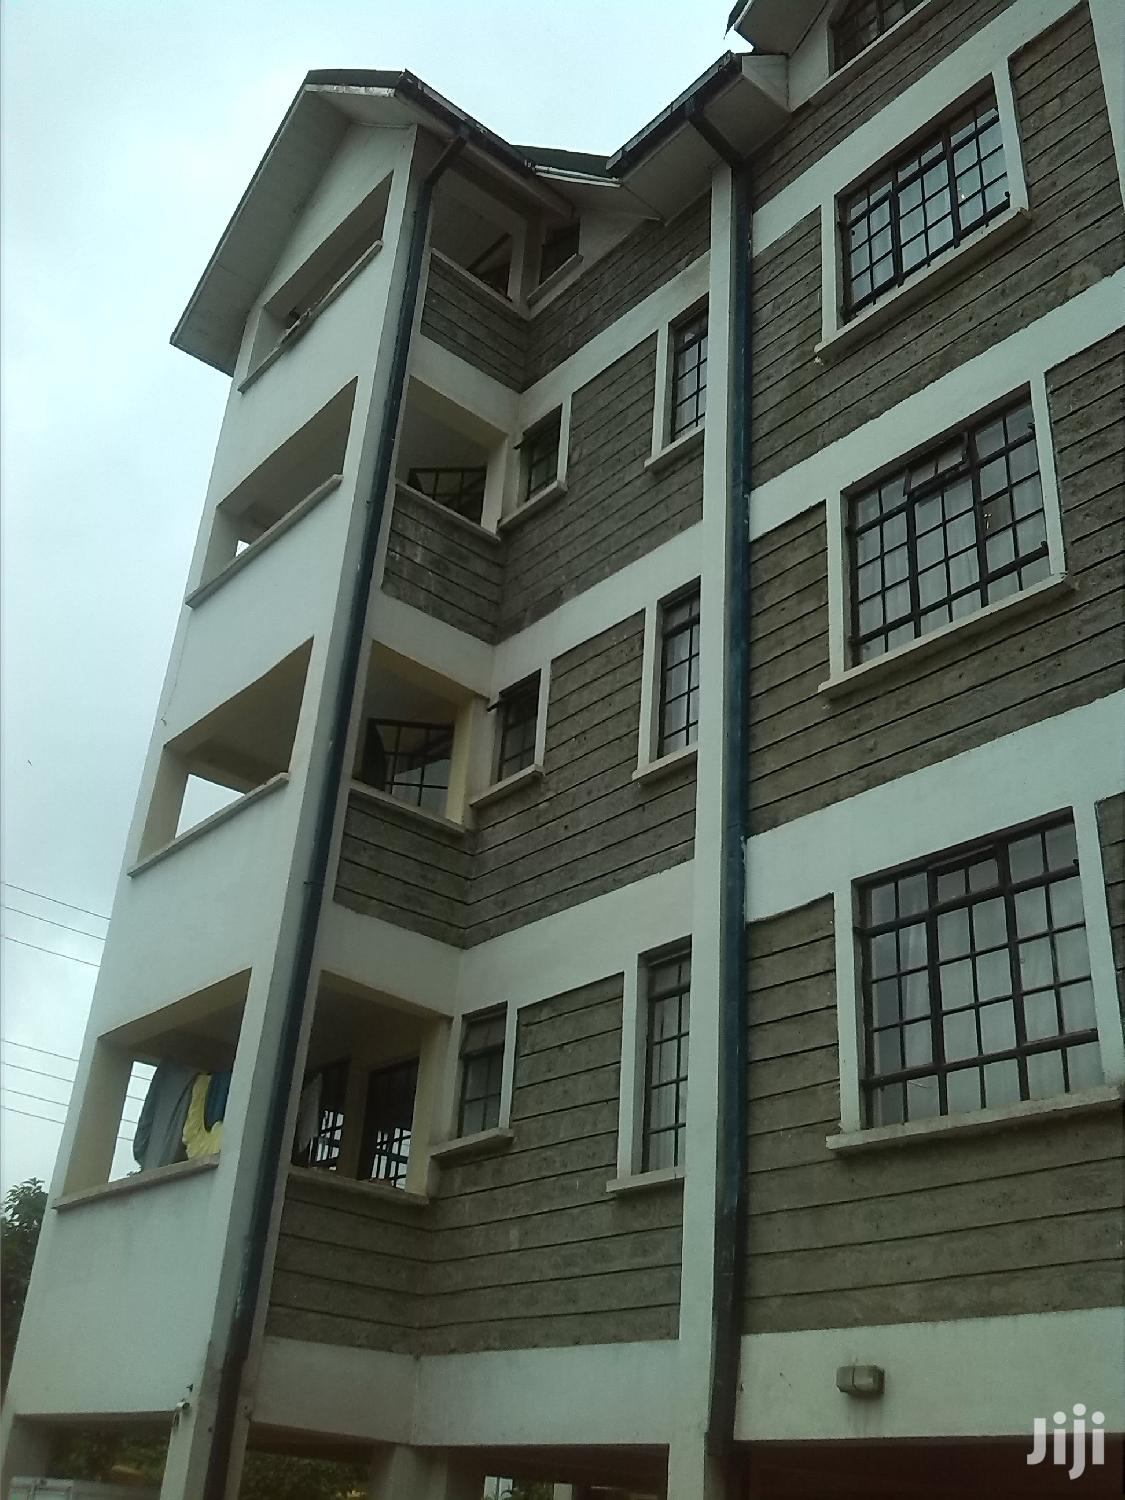 Property World;2brs Apartment With Excellent Finish and Safe